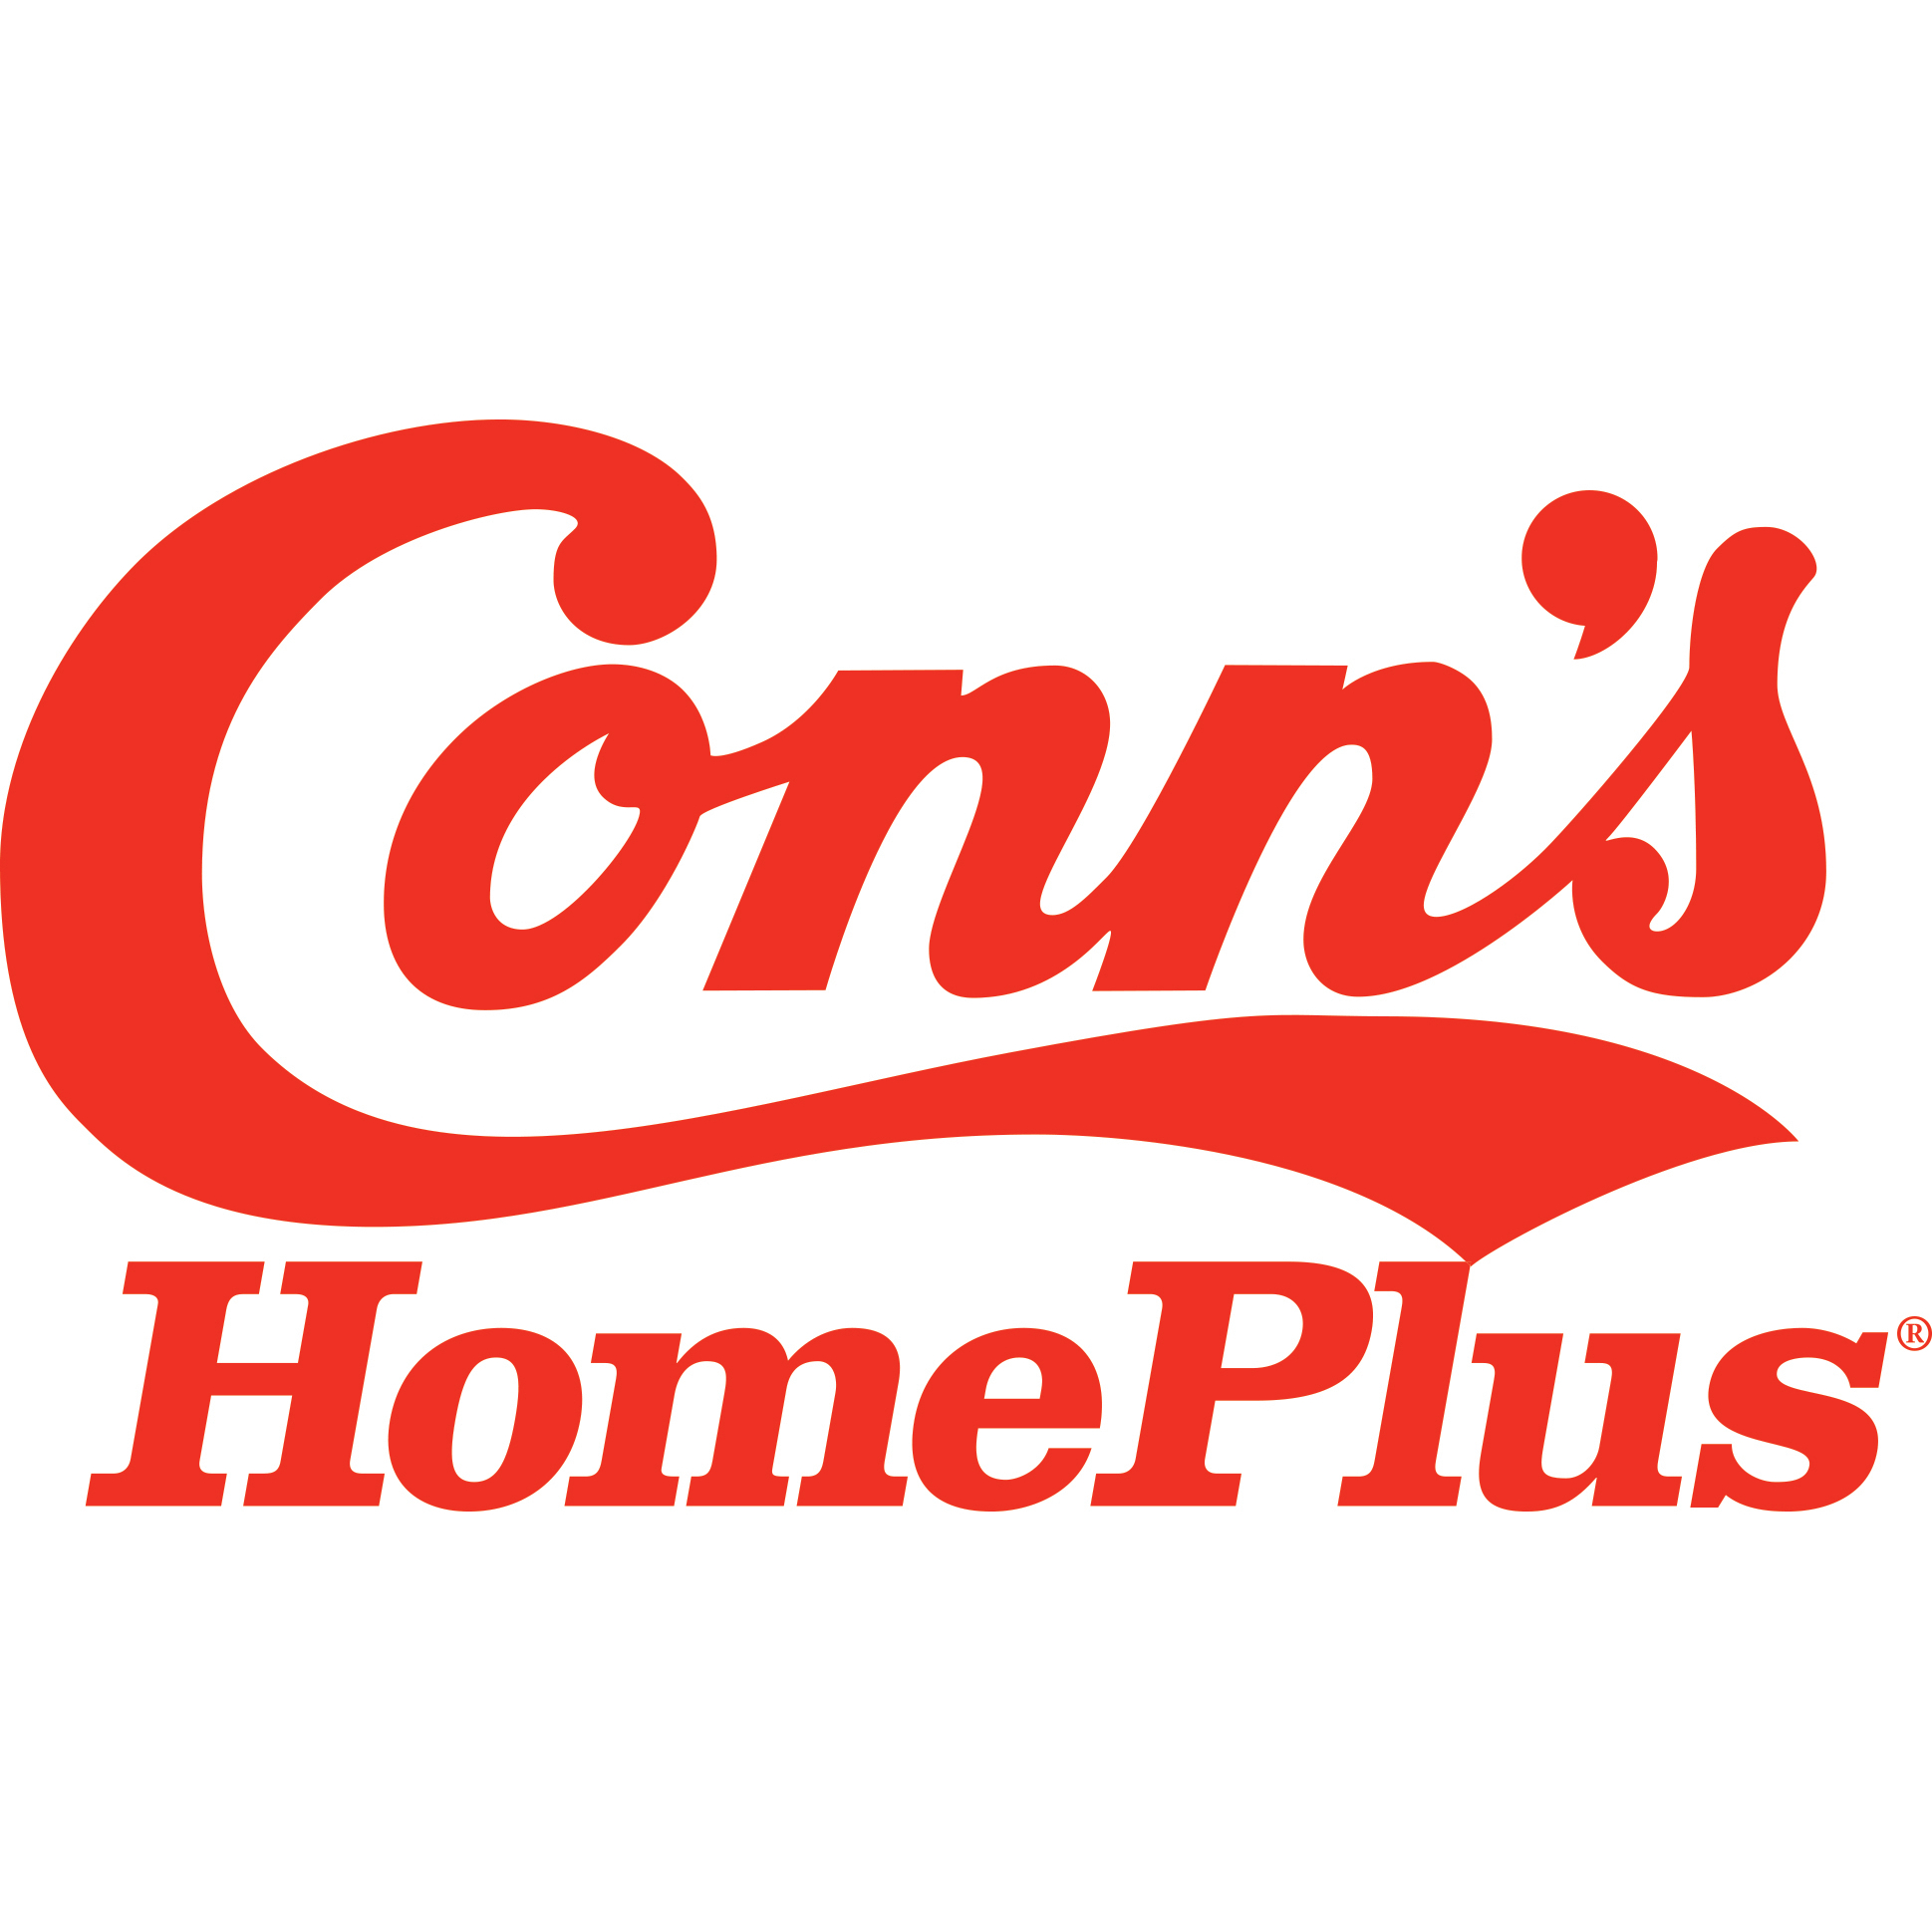 Conn's HomePlus - Houston, TX - Furniture Stores